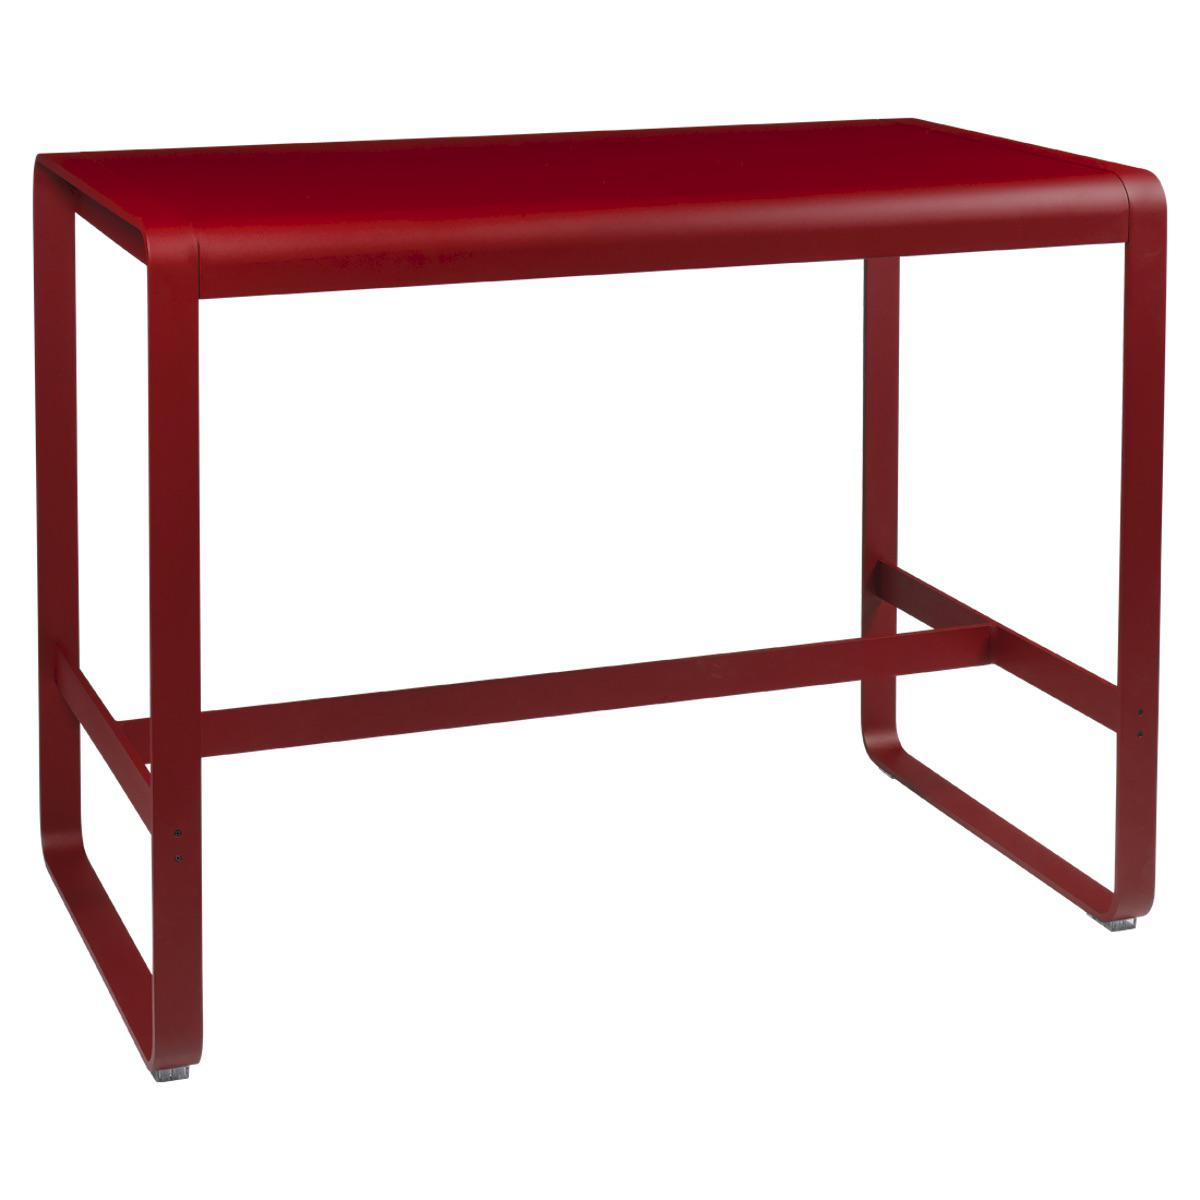 Table haute 80x140cm BELLEVIE Fermob coquelicot